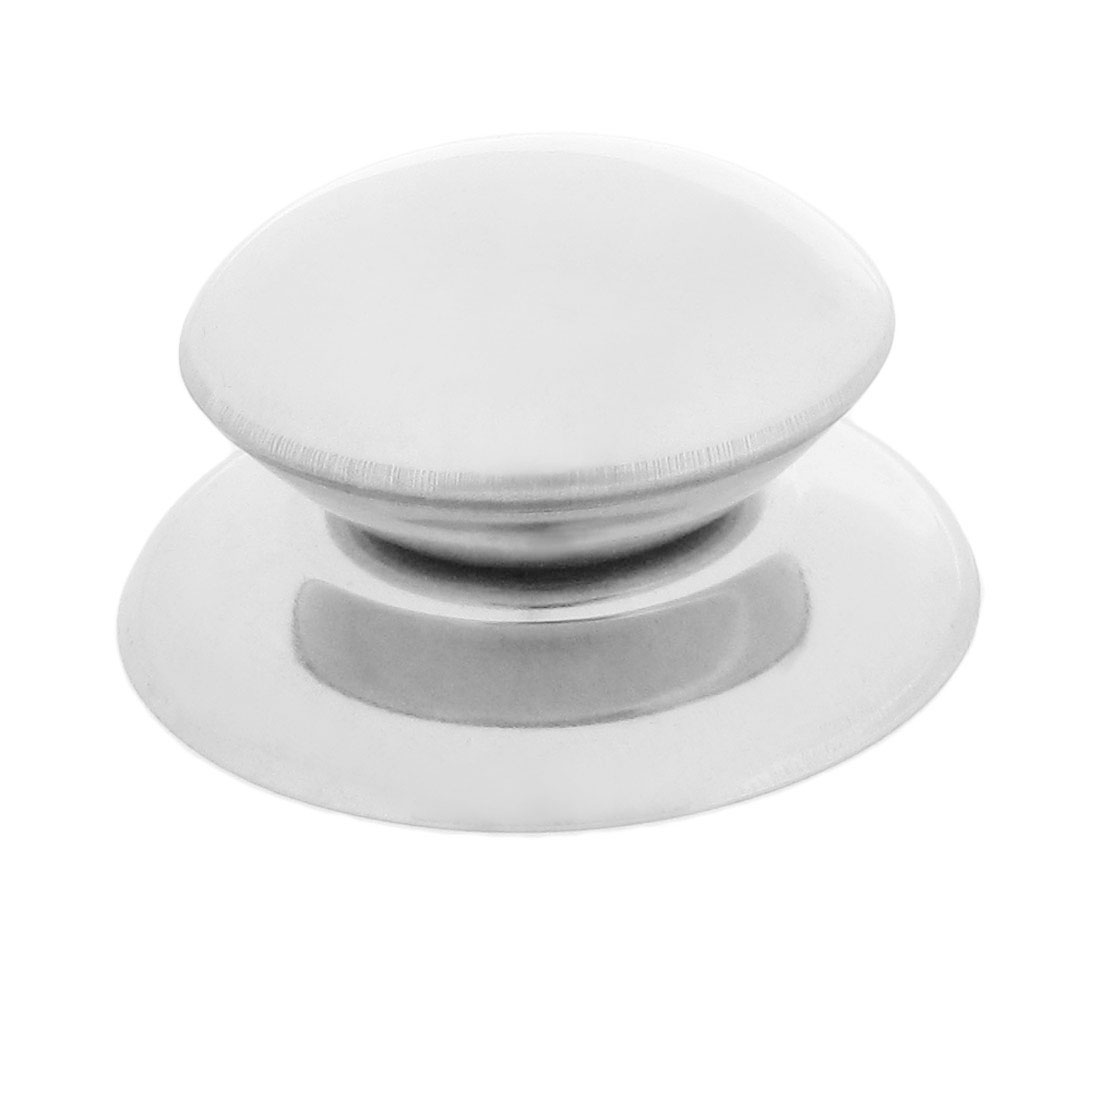 Metal Cookware Replacement Knob 56mm Diameter for Pan Lid Cover